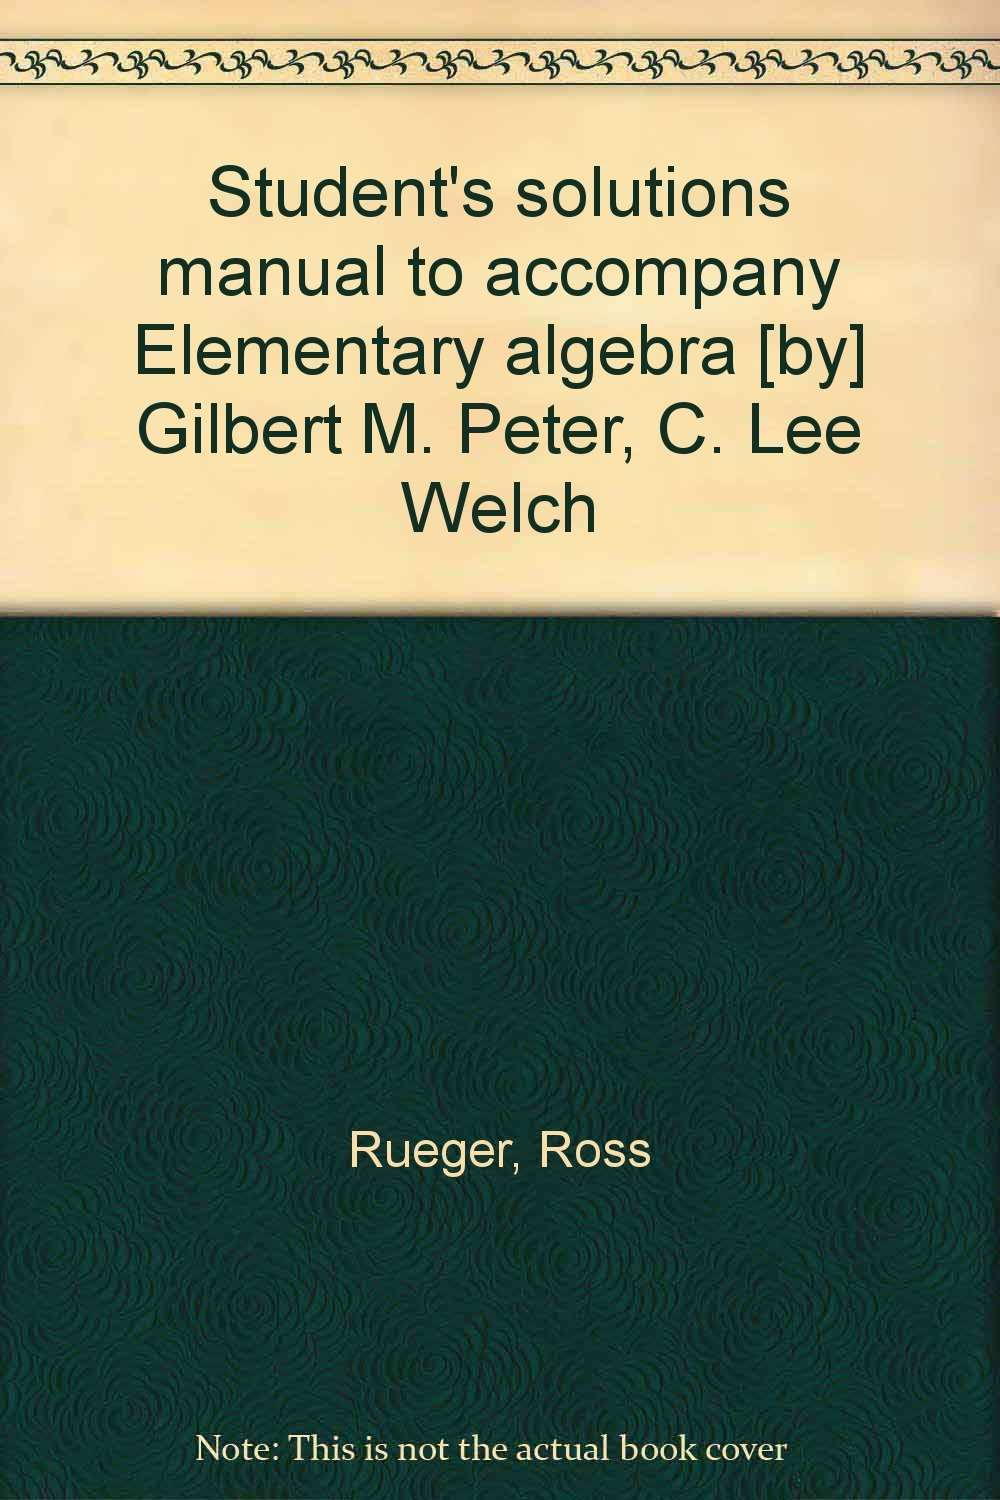 Student's solutions manual to accompany Elementary algebra [by] Gilbert M.  Peter, C. Lee Welch: Ross Rueger: 9780314054524: Amazon.com: Books